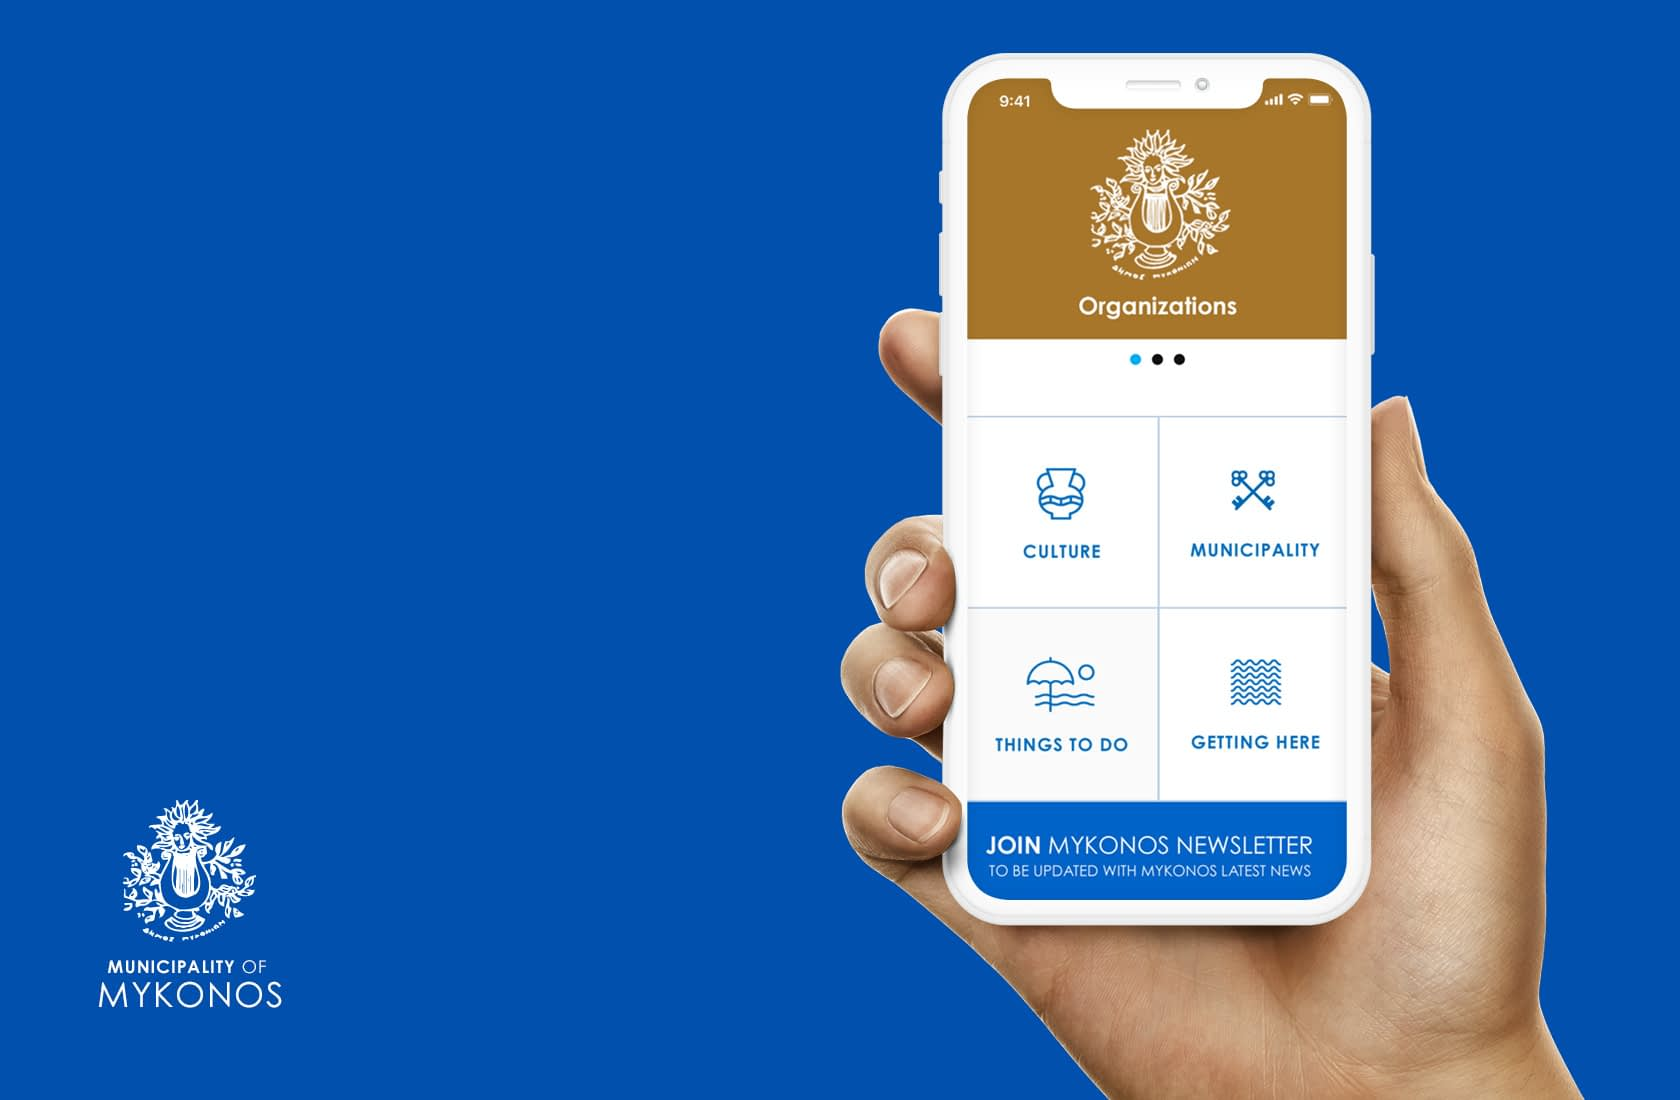 Municipality of Mykonos Mobile Website UI Design